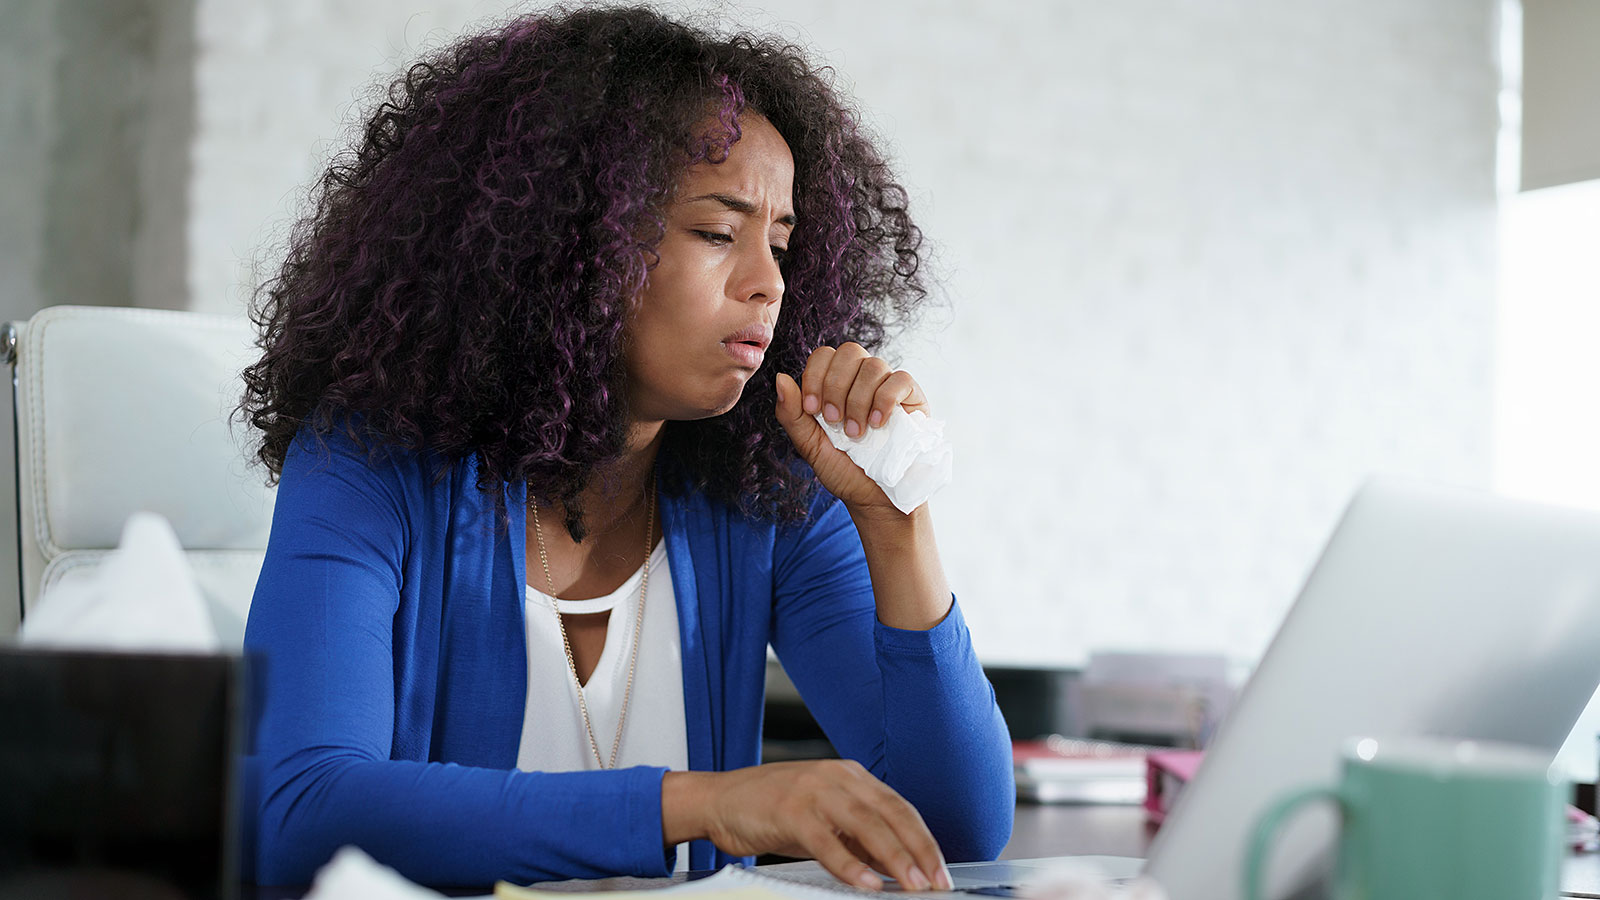 This is what your coworkers are really thinking when you cough in the office